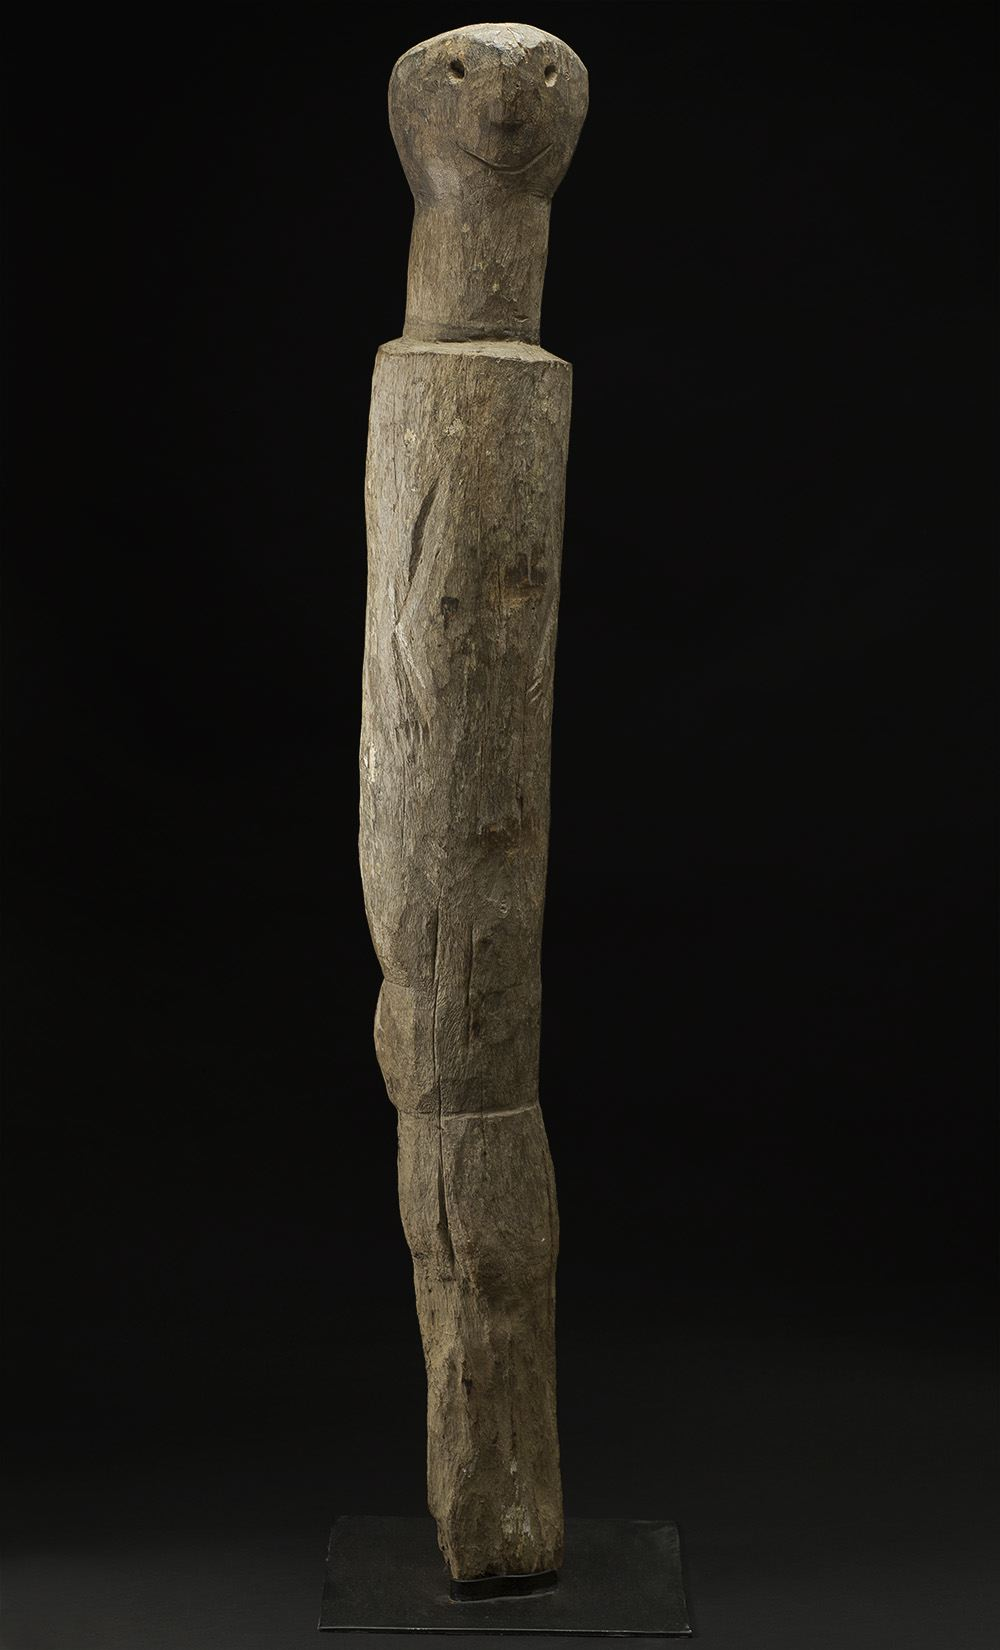 Africa    Moba Ancestral Sculpture - Moba People - Northern Togo  , Early 20th C. Wood 55 x 7 x 7 inches 139.7 x 17.8 x 17.8 cm Af 334